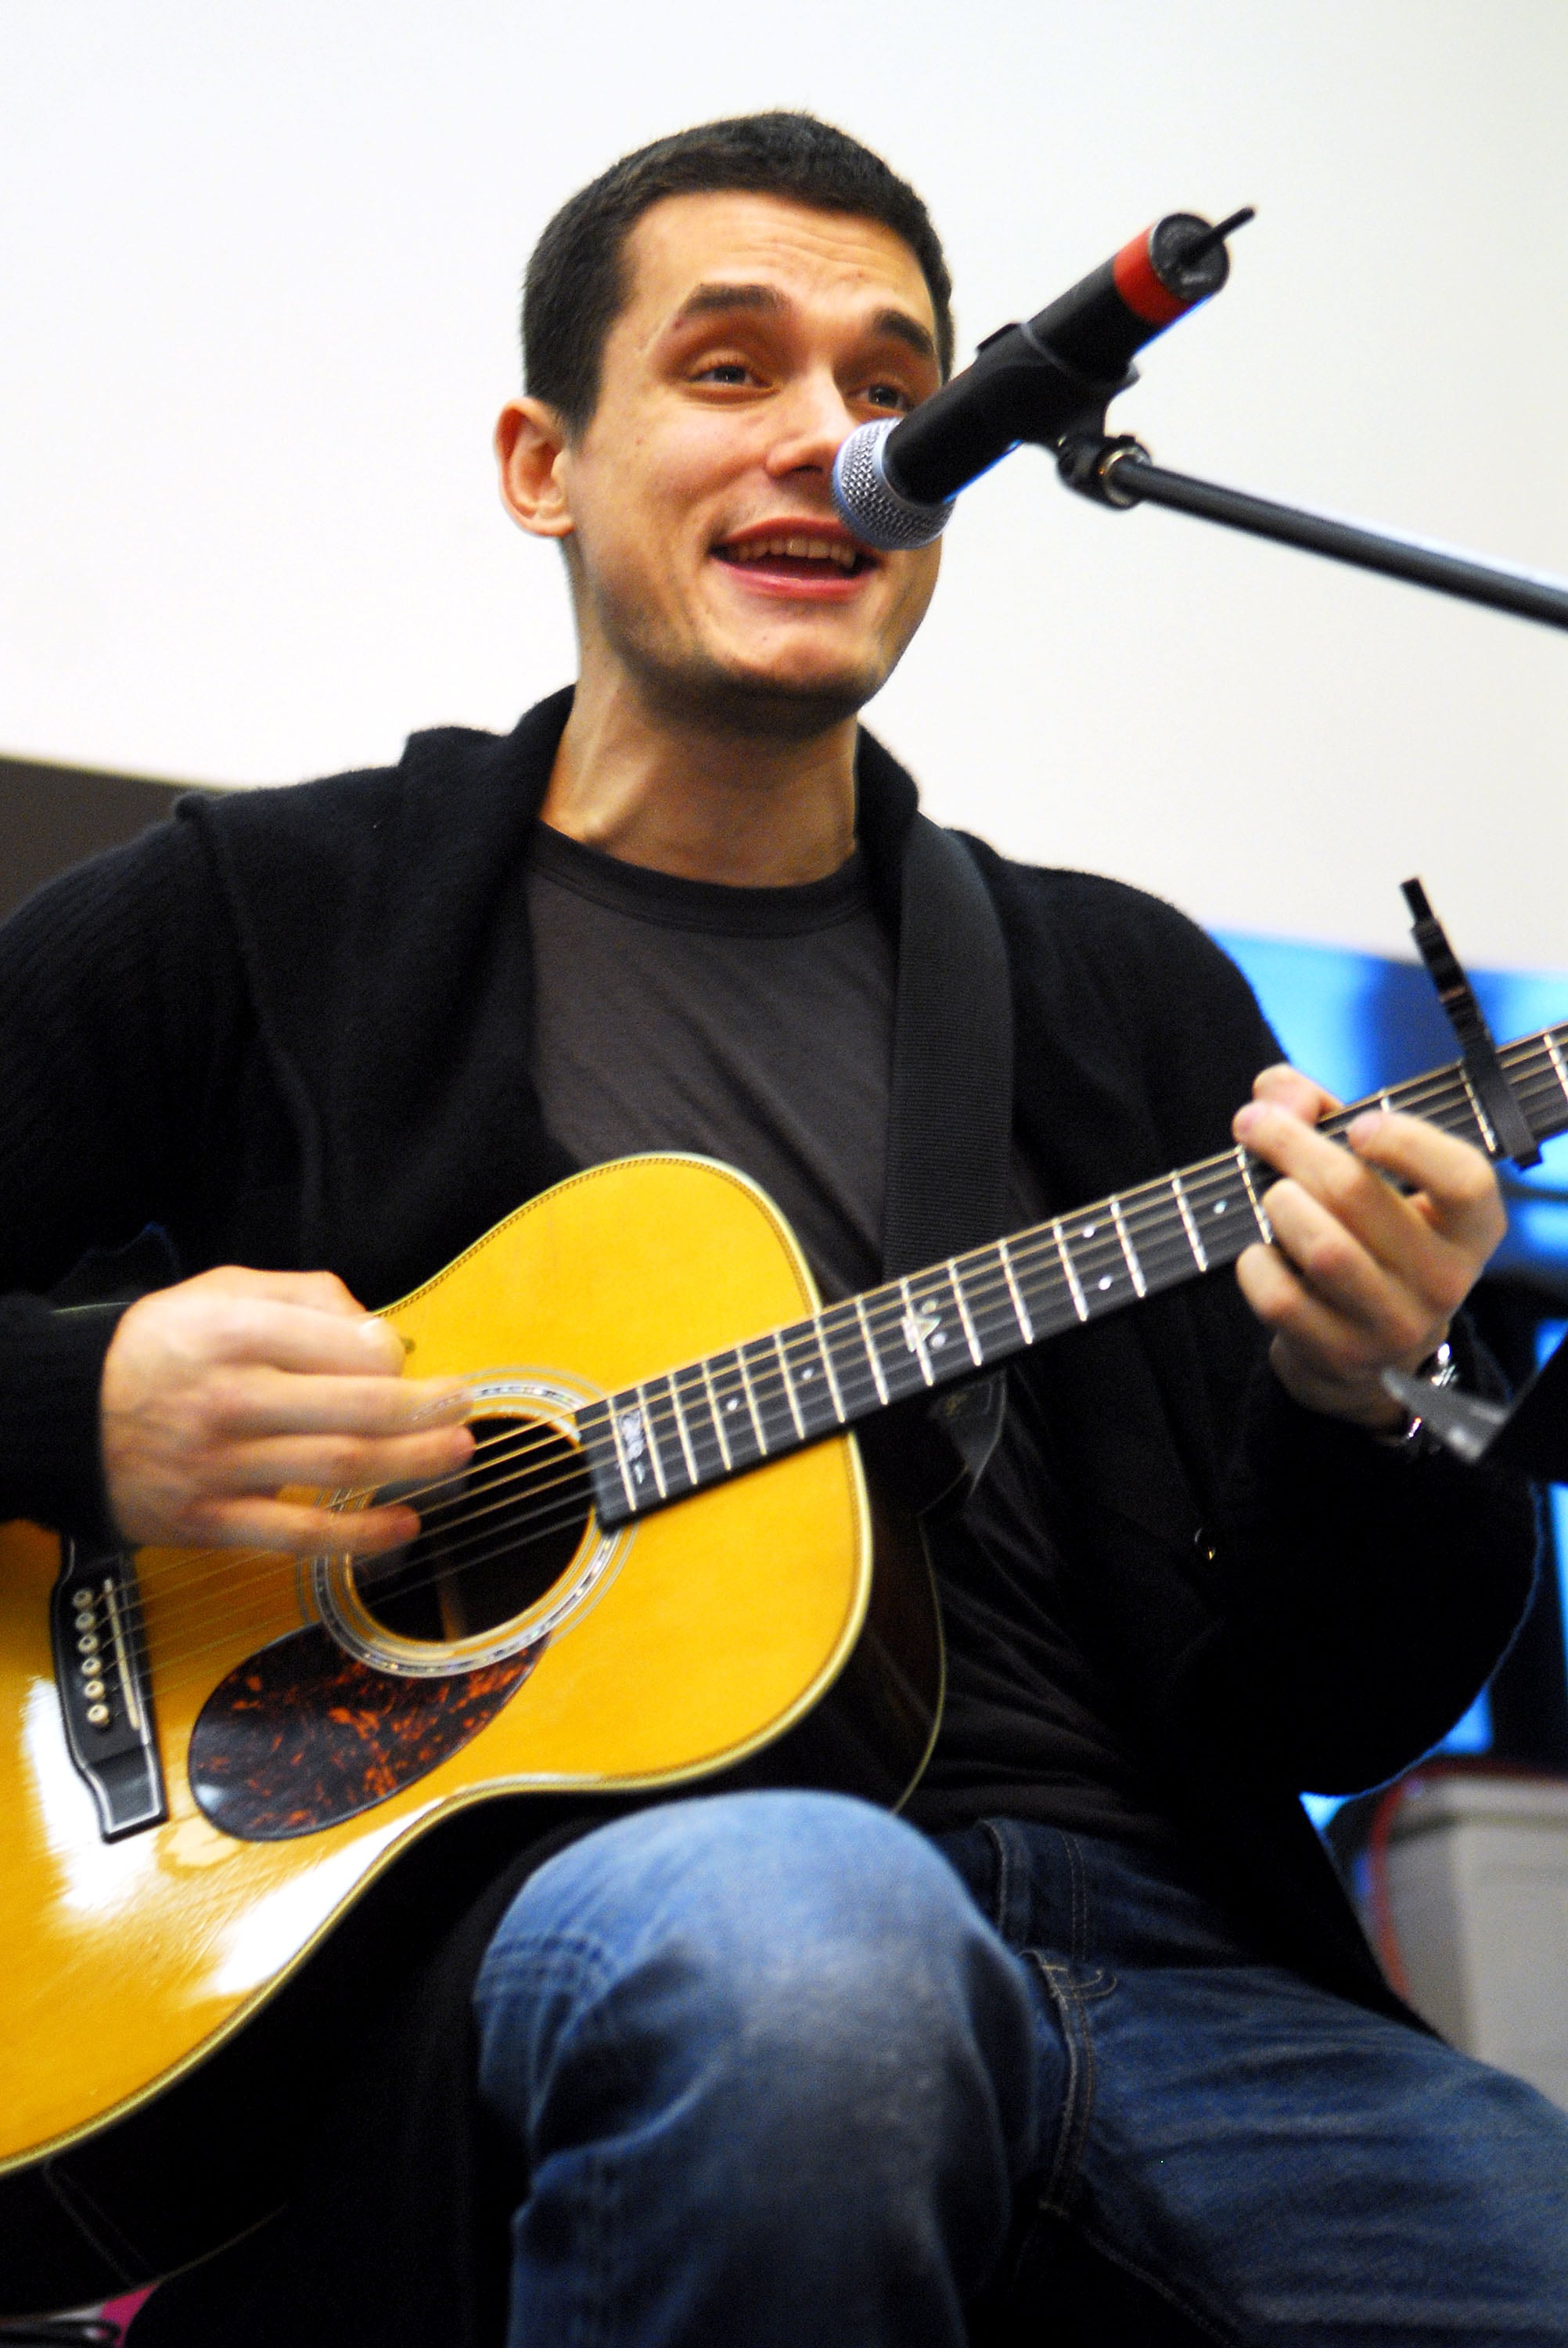 Photos Of John Mayer Playing The Guitar At A Children S